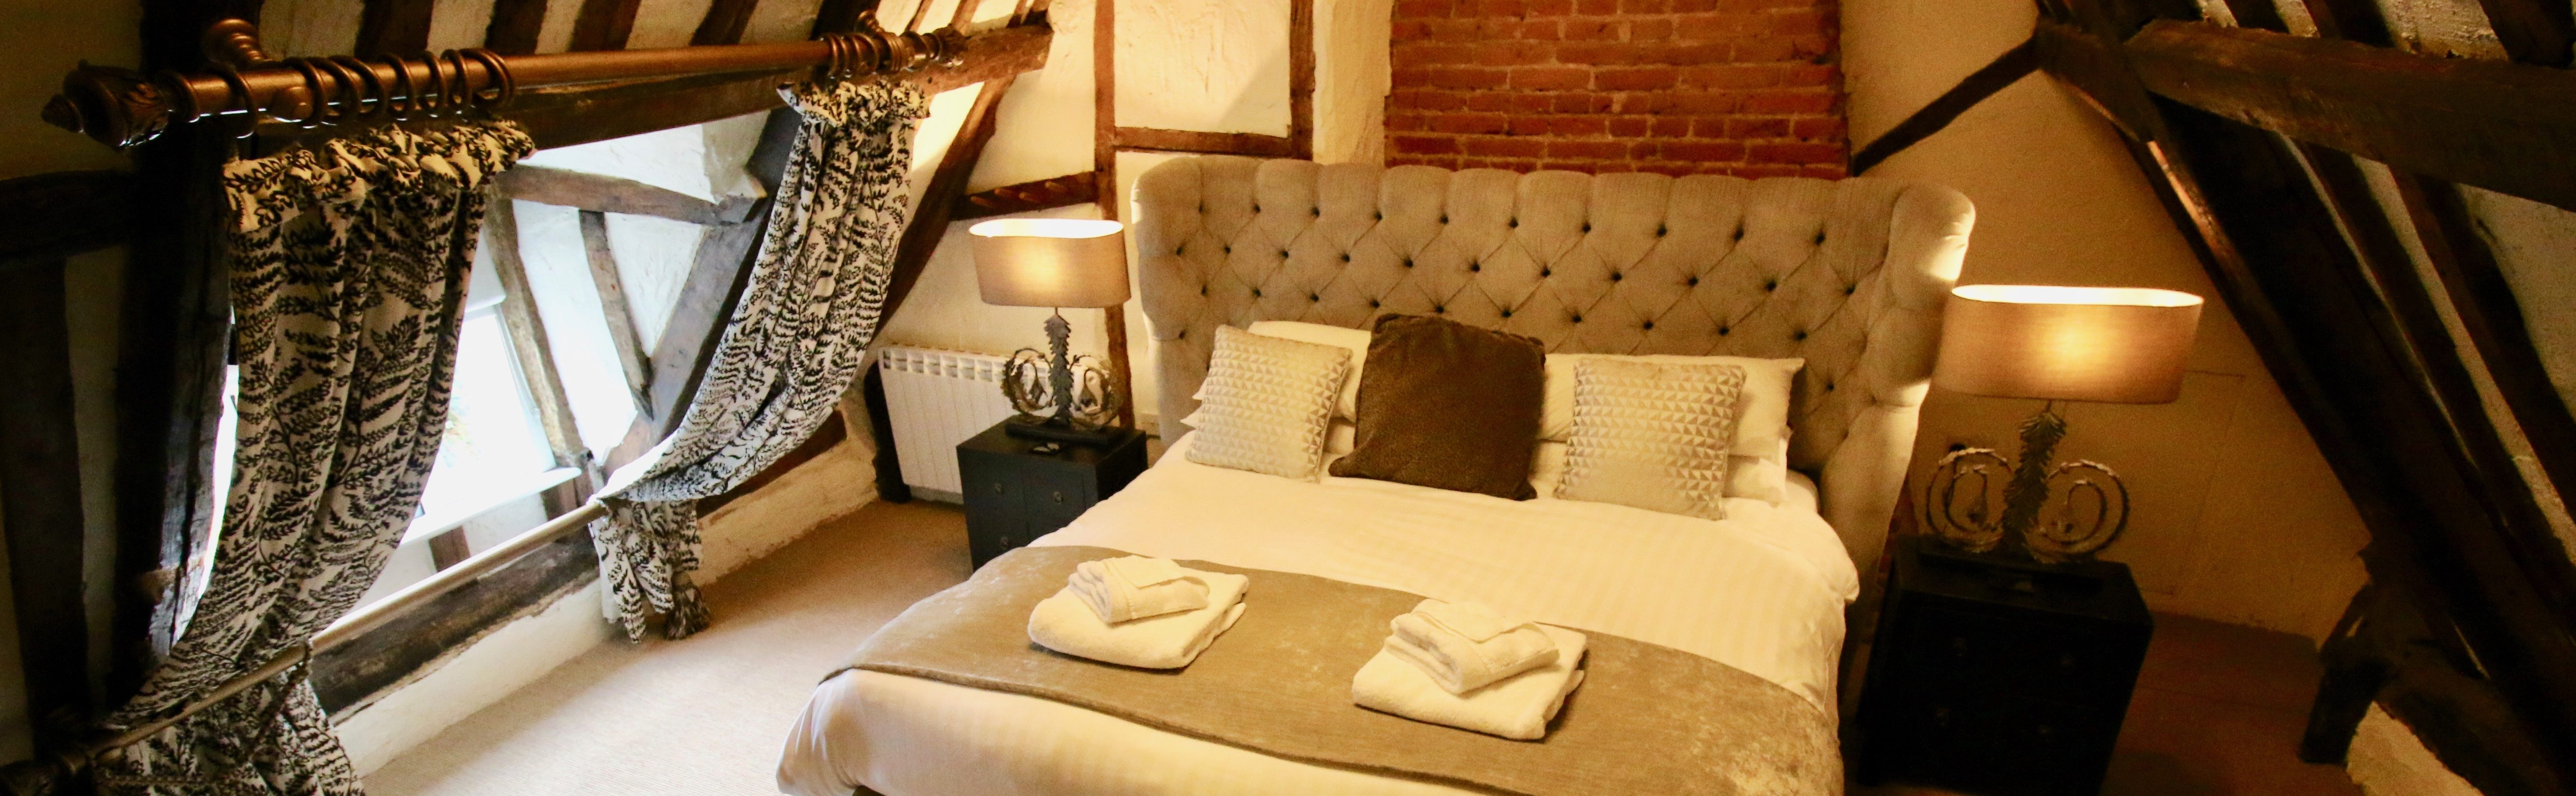 Luxury B&B rooms - 10% off when you stay for 2 night Friday - Sunday